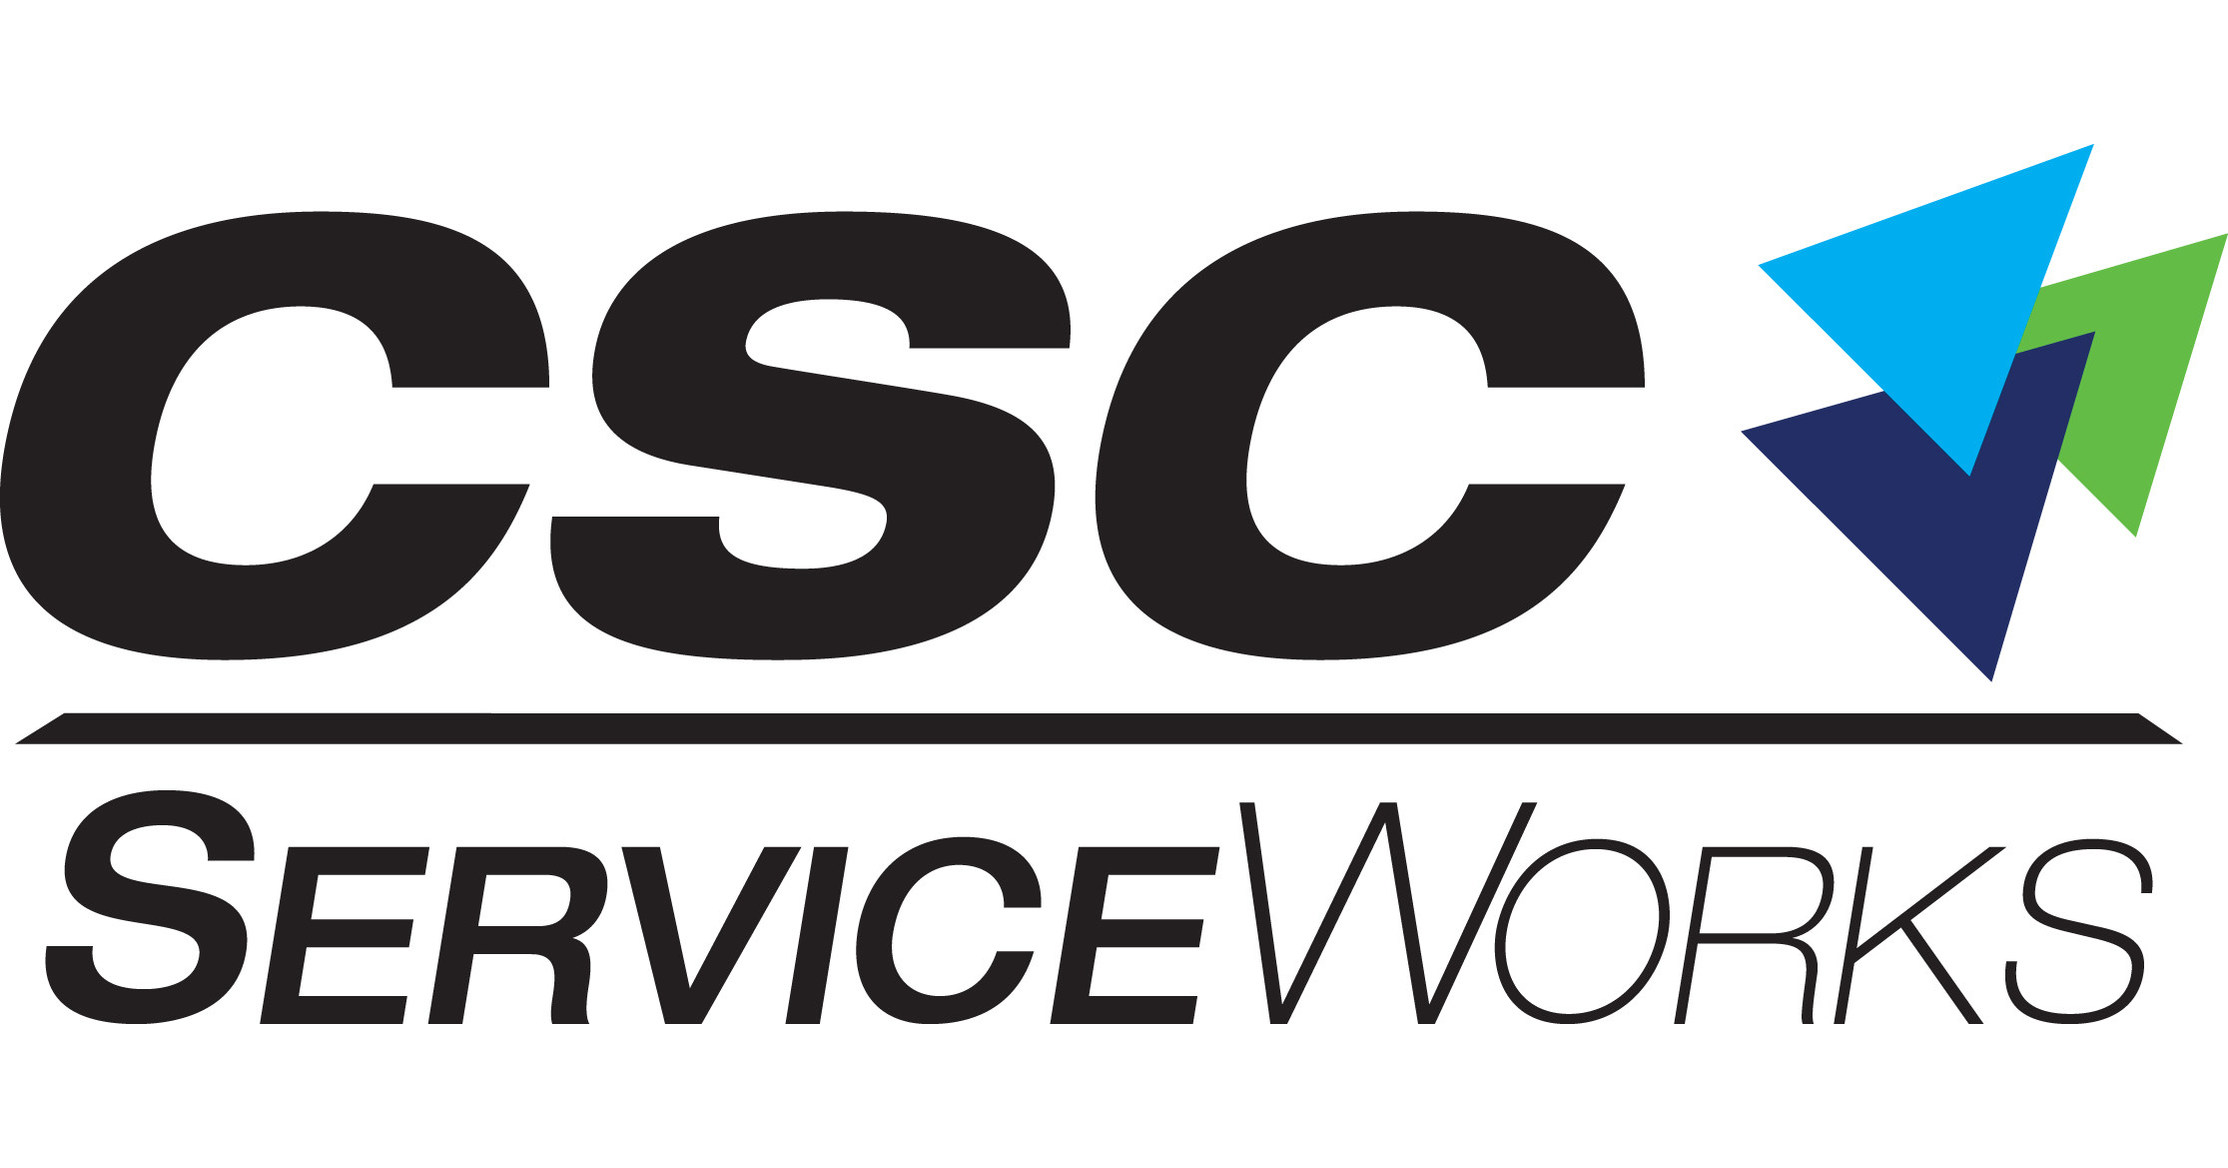 CSC ServiceWorks Acquires Assets of Select Laundry